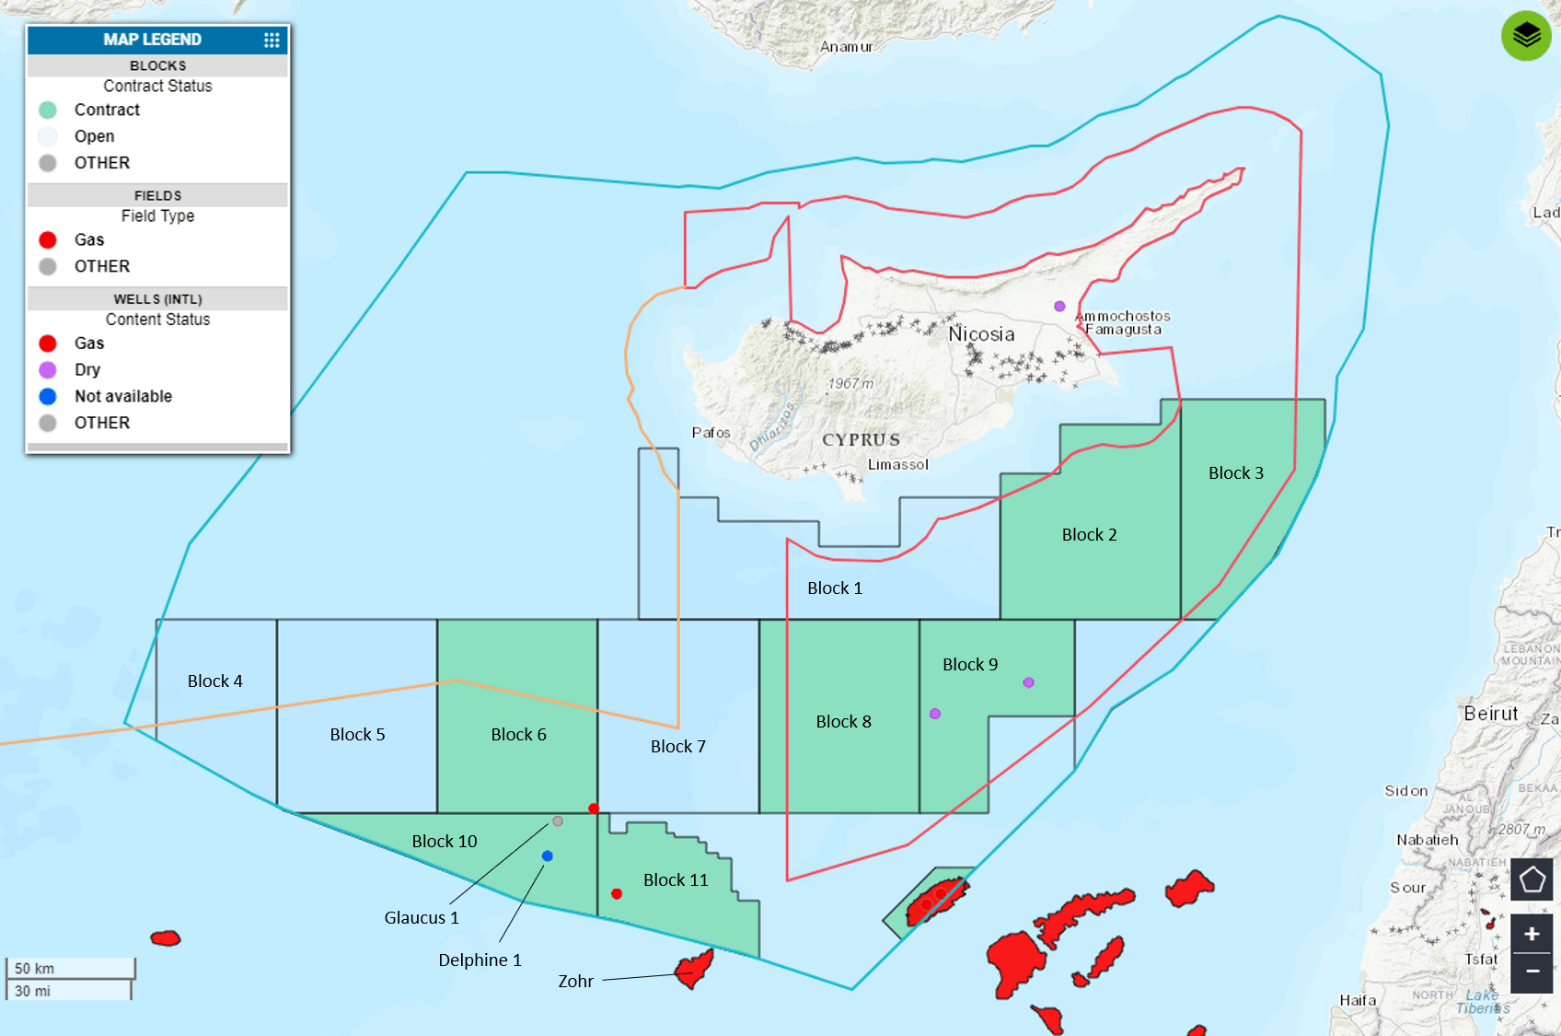 Figure 1. Republic of Cyprus demarcated offshore blocks and exploration wells. Also shown are the RoC's proclaimed and partly agreed EEZ (light blue line), the TRNC's proclaimed EEZ and outline of demarcated blocks (red line), the outer limits of the continental shelf as claimed by Turkey (orange line) as well as Turkey's offshore exploration wells. (This map is not an authority on international boundaries)